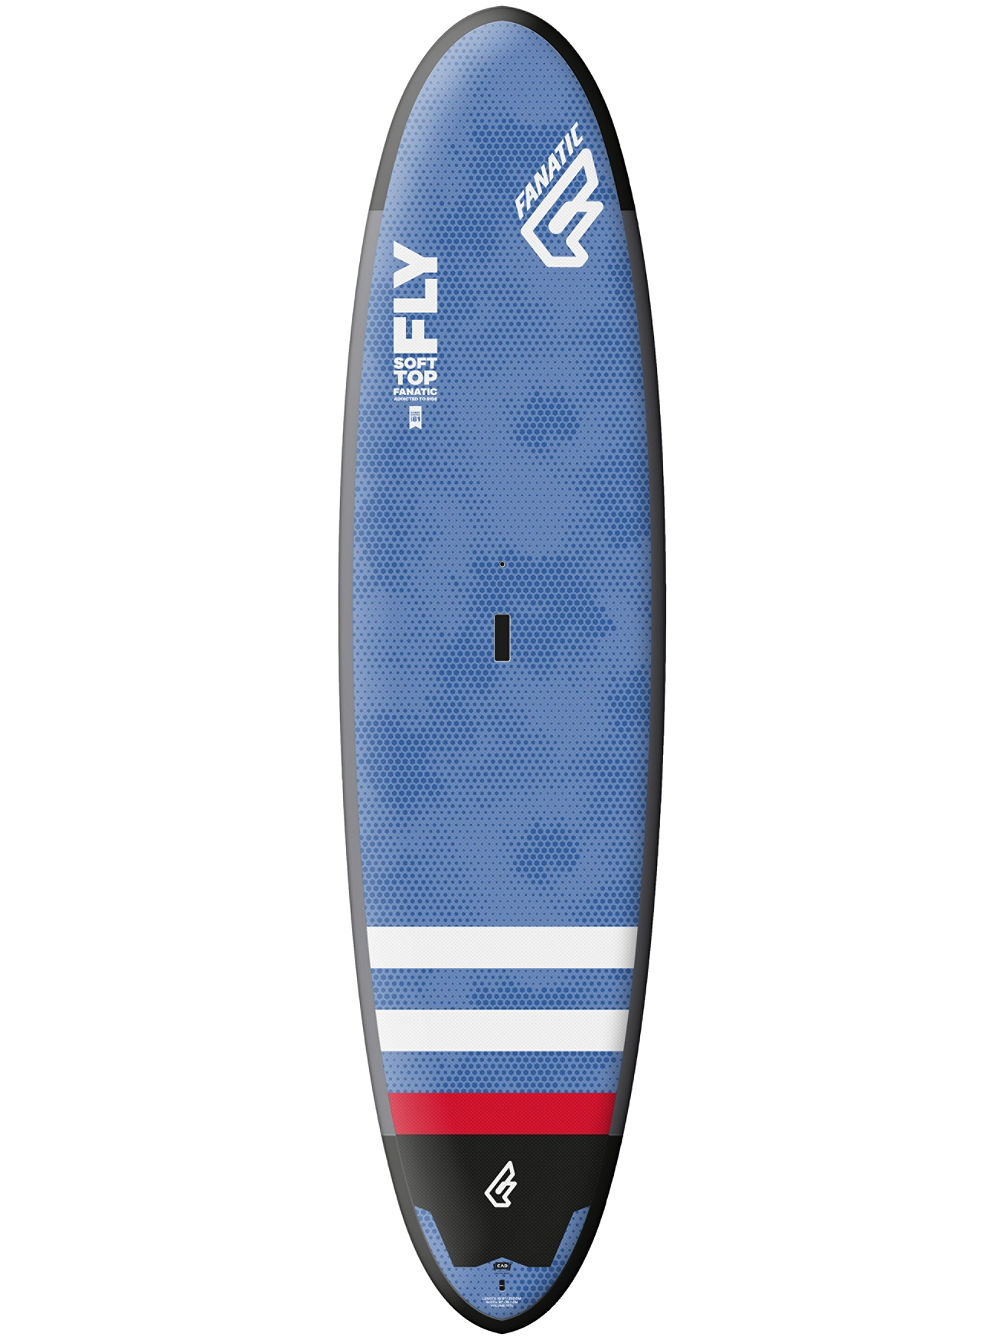 Fly Softtop 11.2 SUP Board